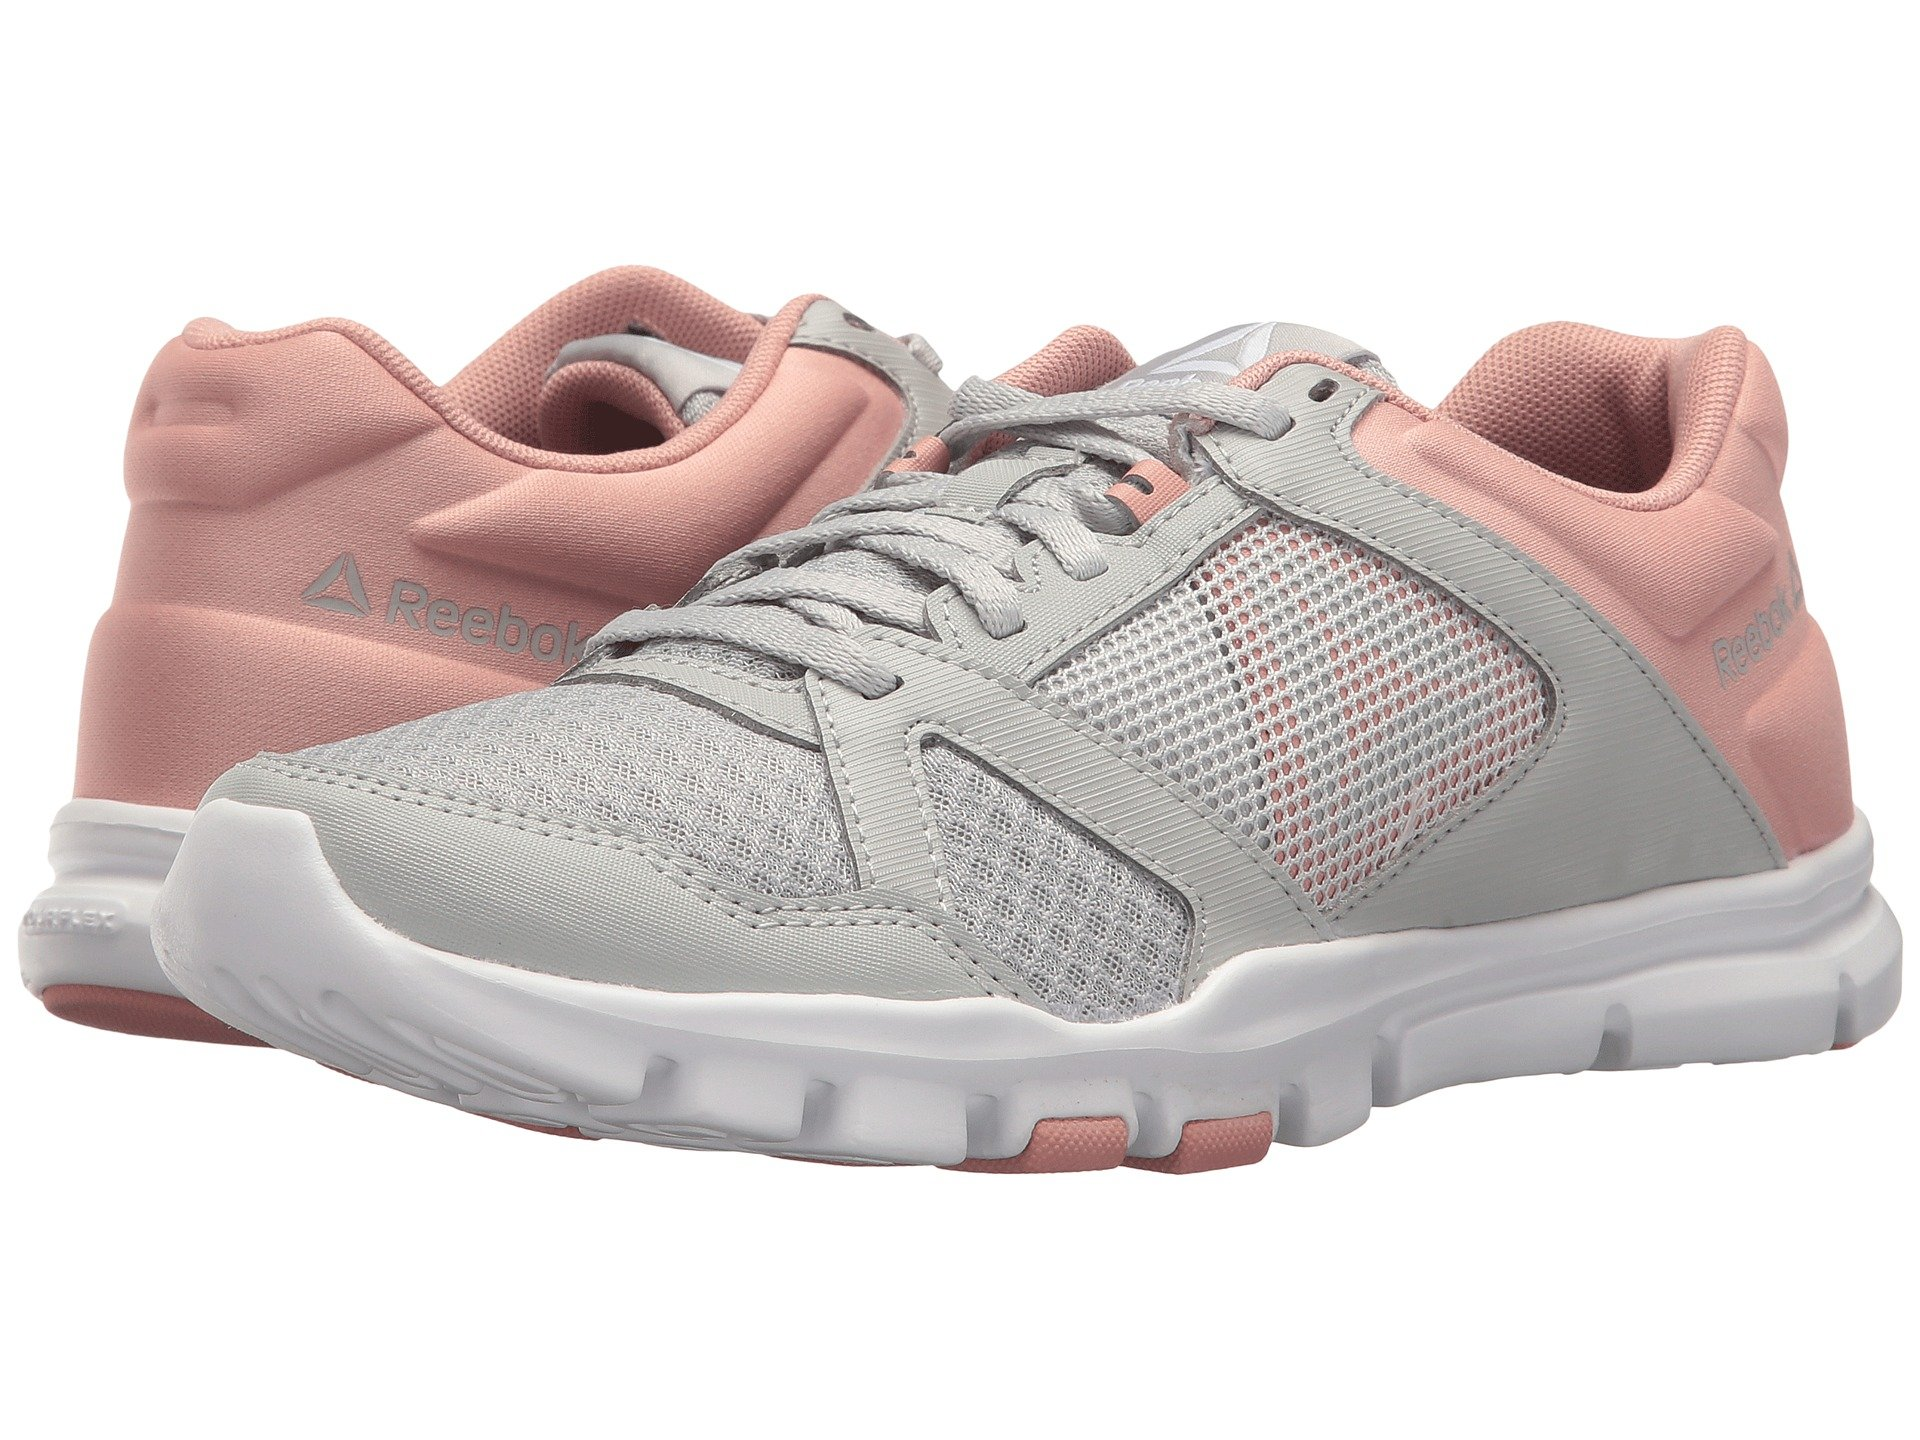 12bc5f7cd043d3 REEBOK Yourflex Trainette 10 Mt